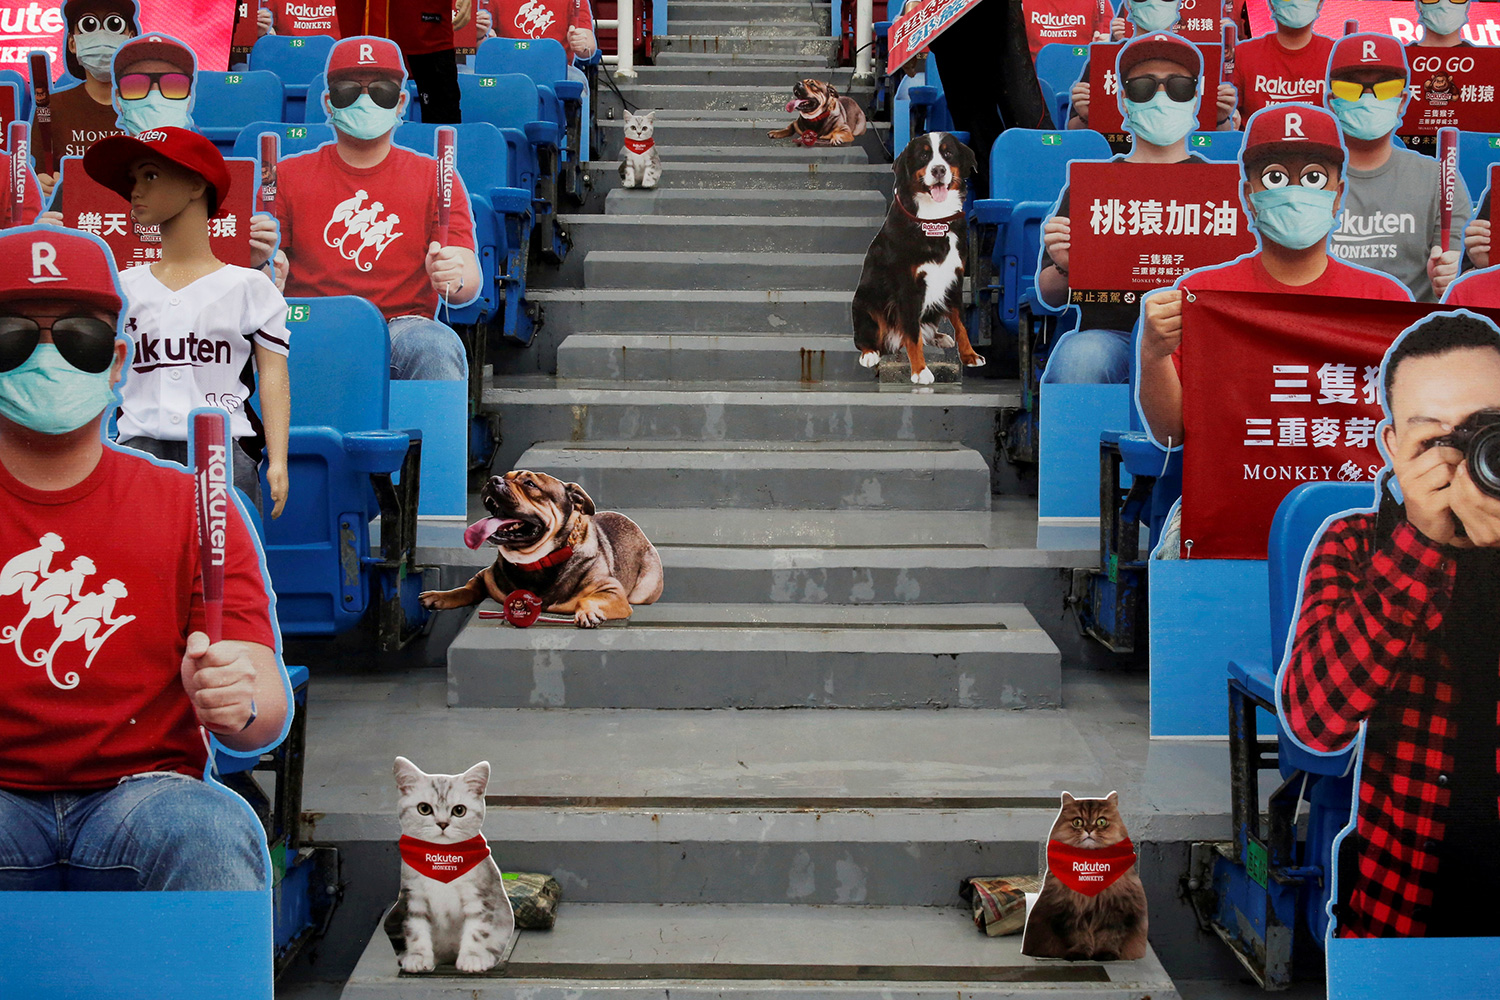 This is a very strange photo showing a section of seats at a sports venue filled with mannequins, cardboard cutouts and all manner of fake people.